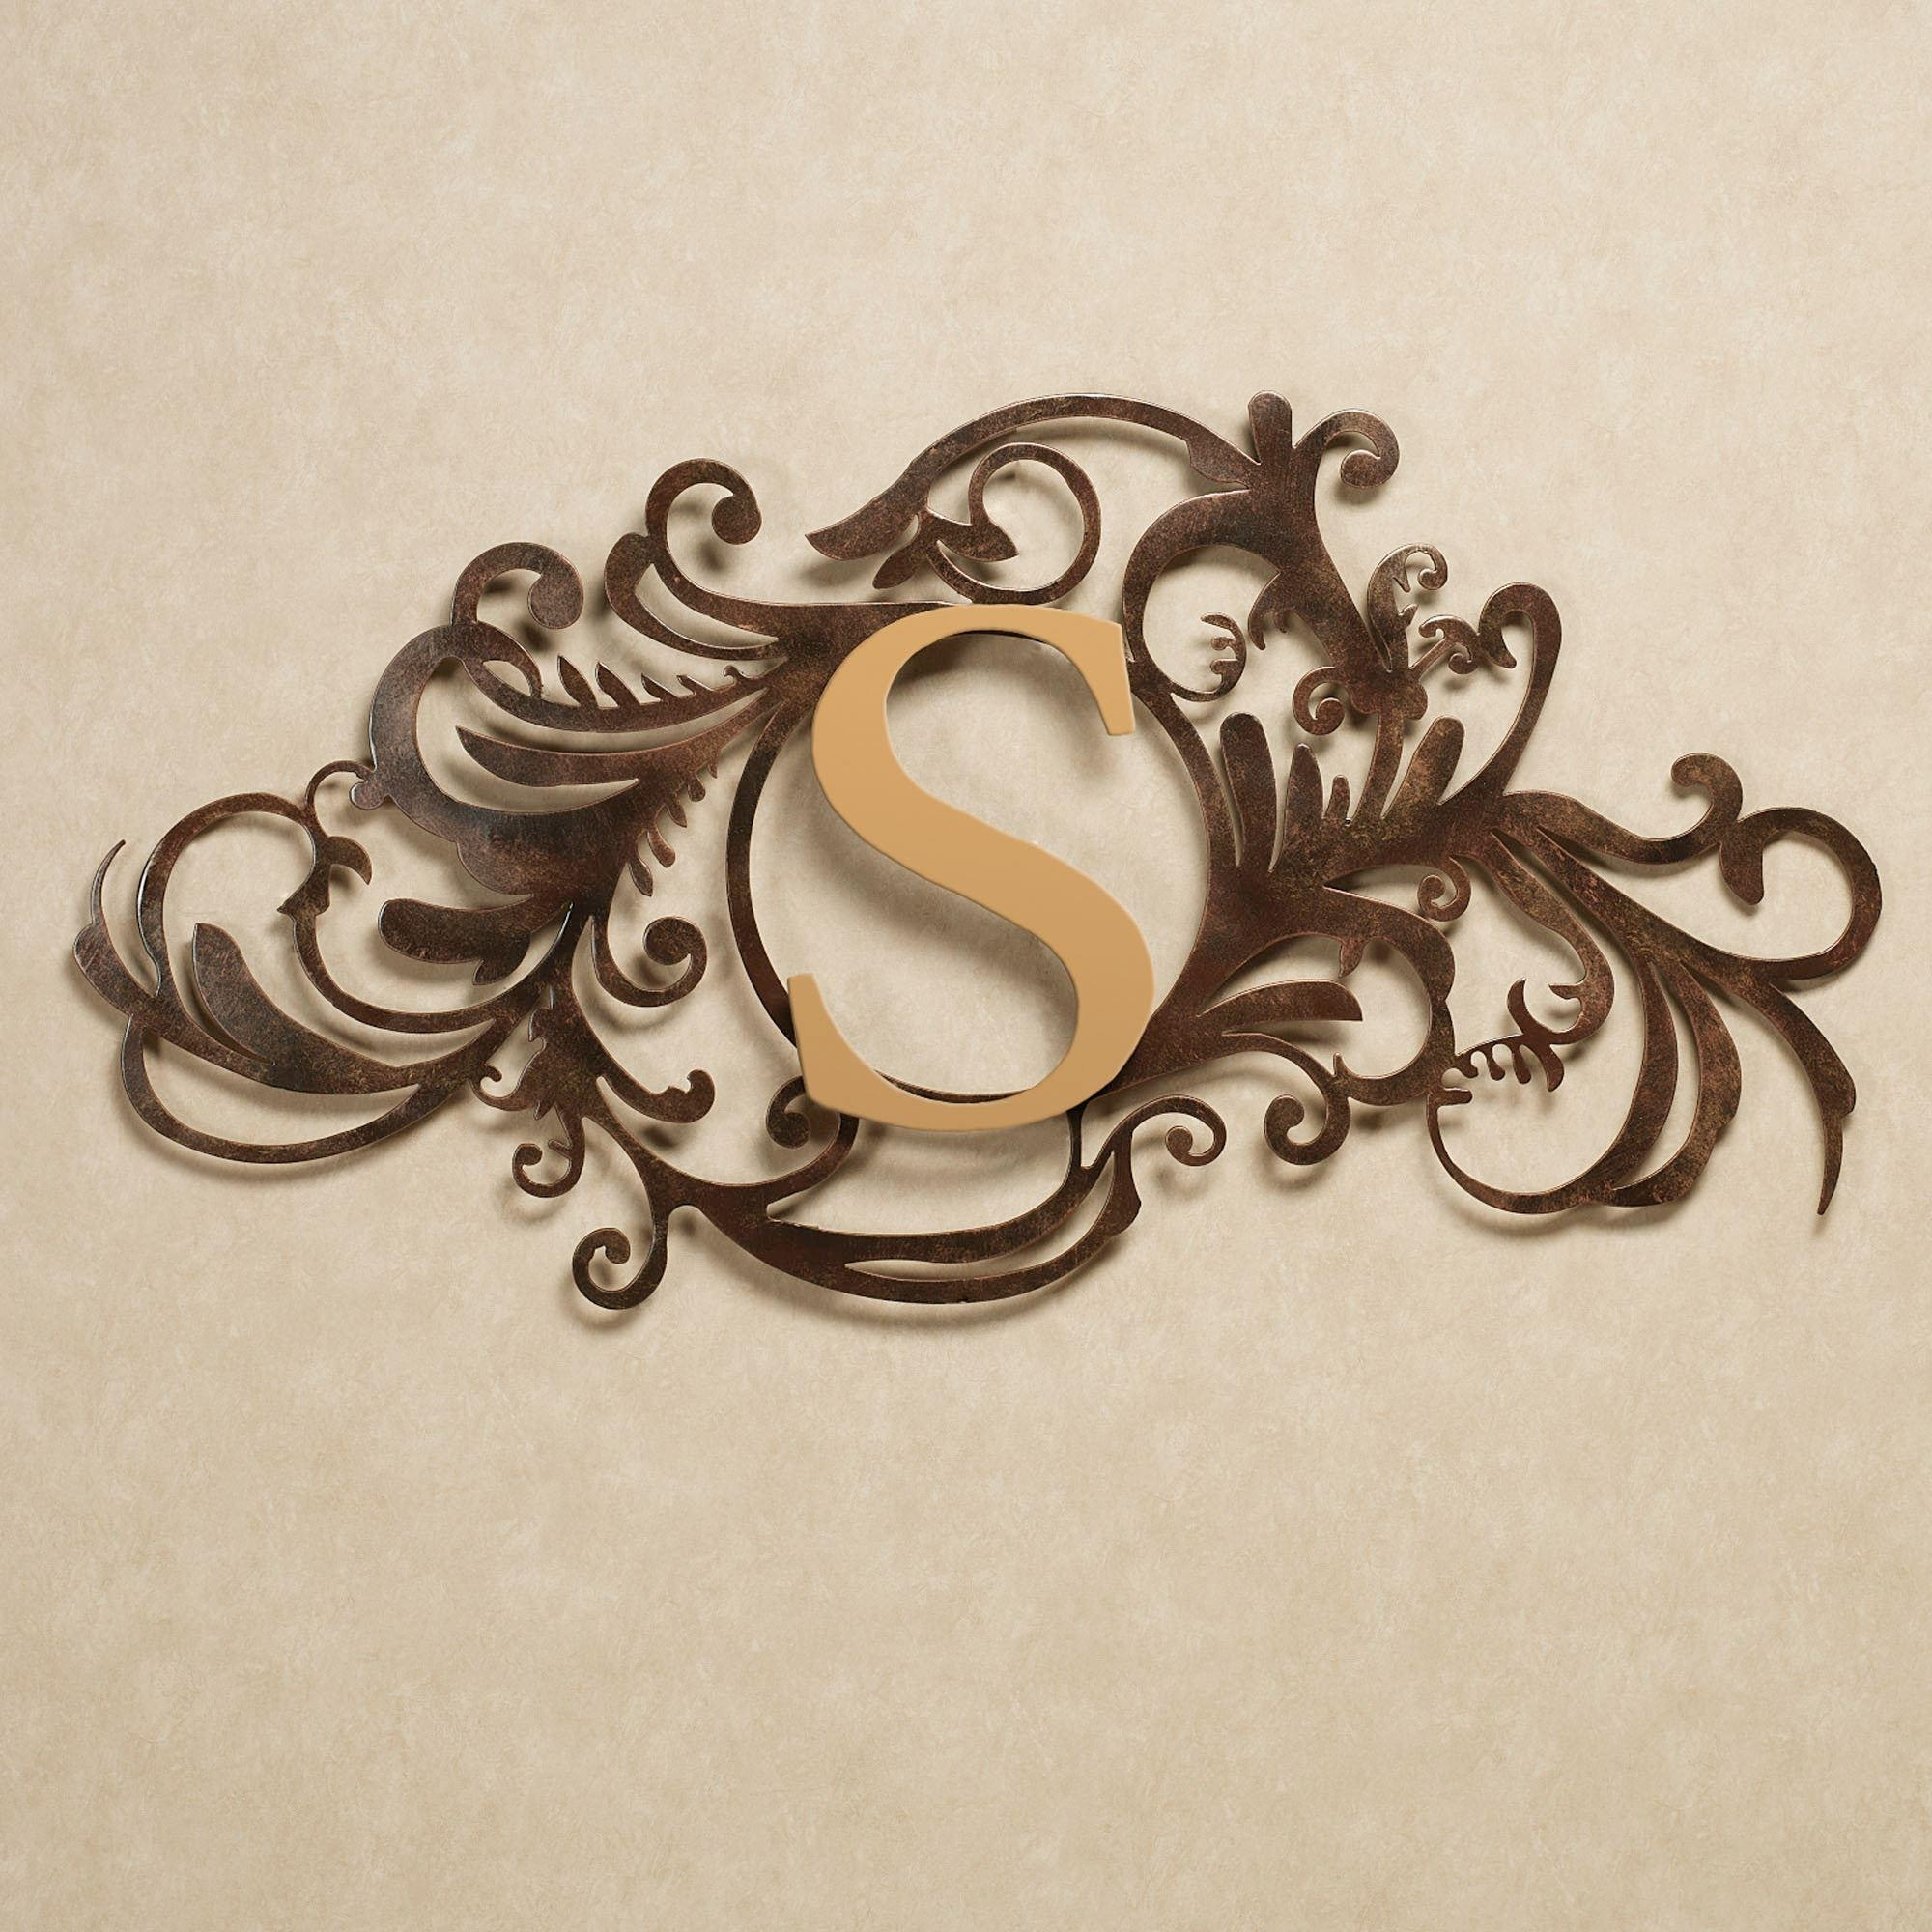 Evanston Indoor Outdoor Monogram Metal Wall Art Sign Intended For Monogram Metal Wall Art (View 2 of 20)